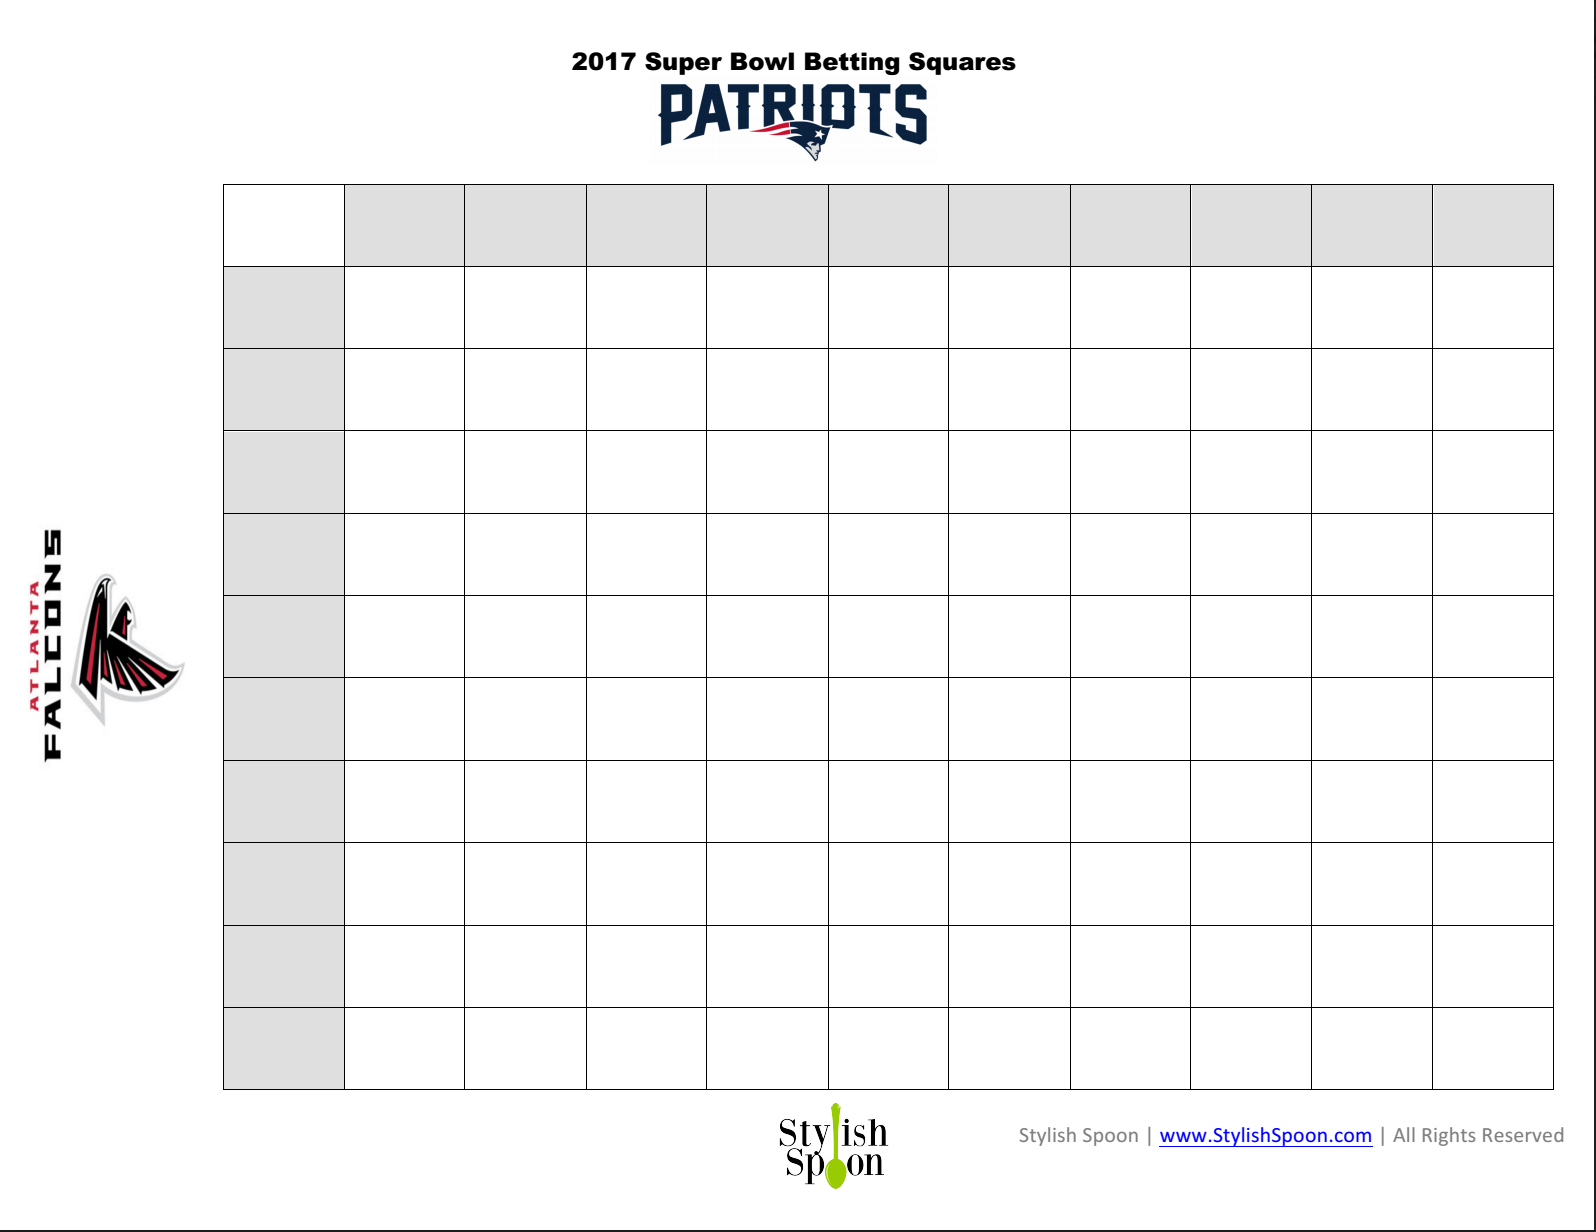 Free Printable 2017 Super Bowl Betting Squares - Stylish Spoon